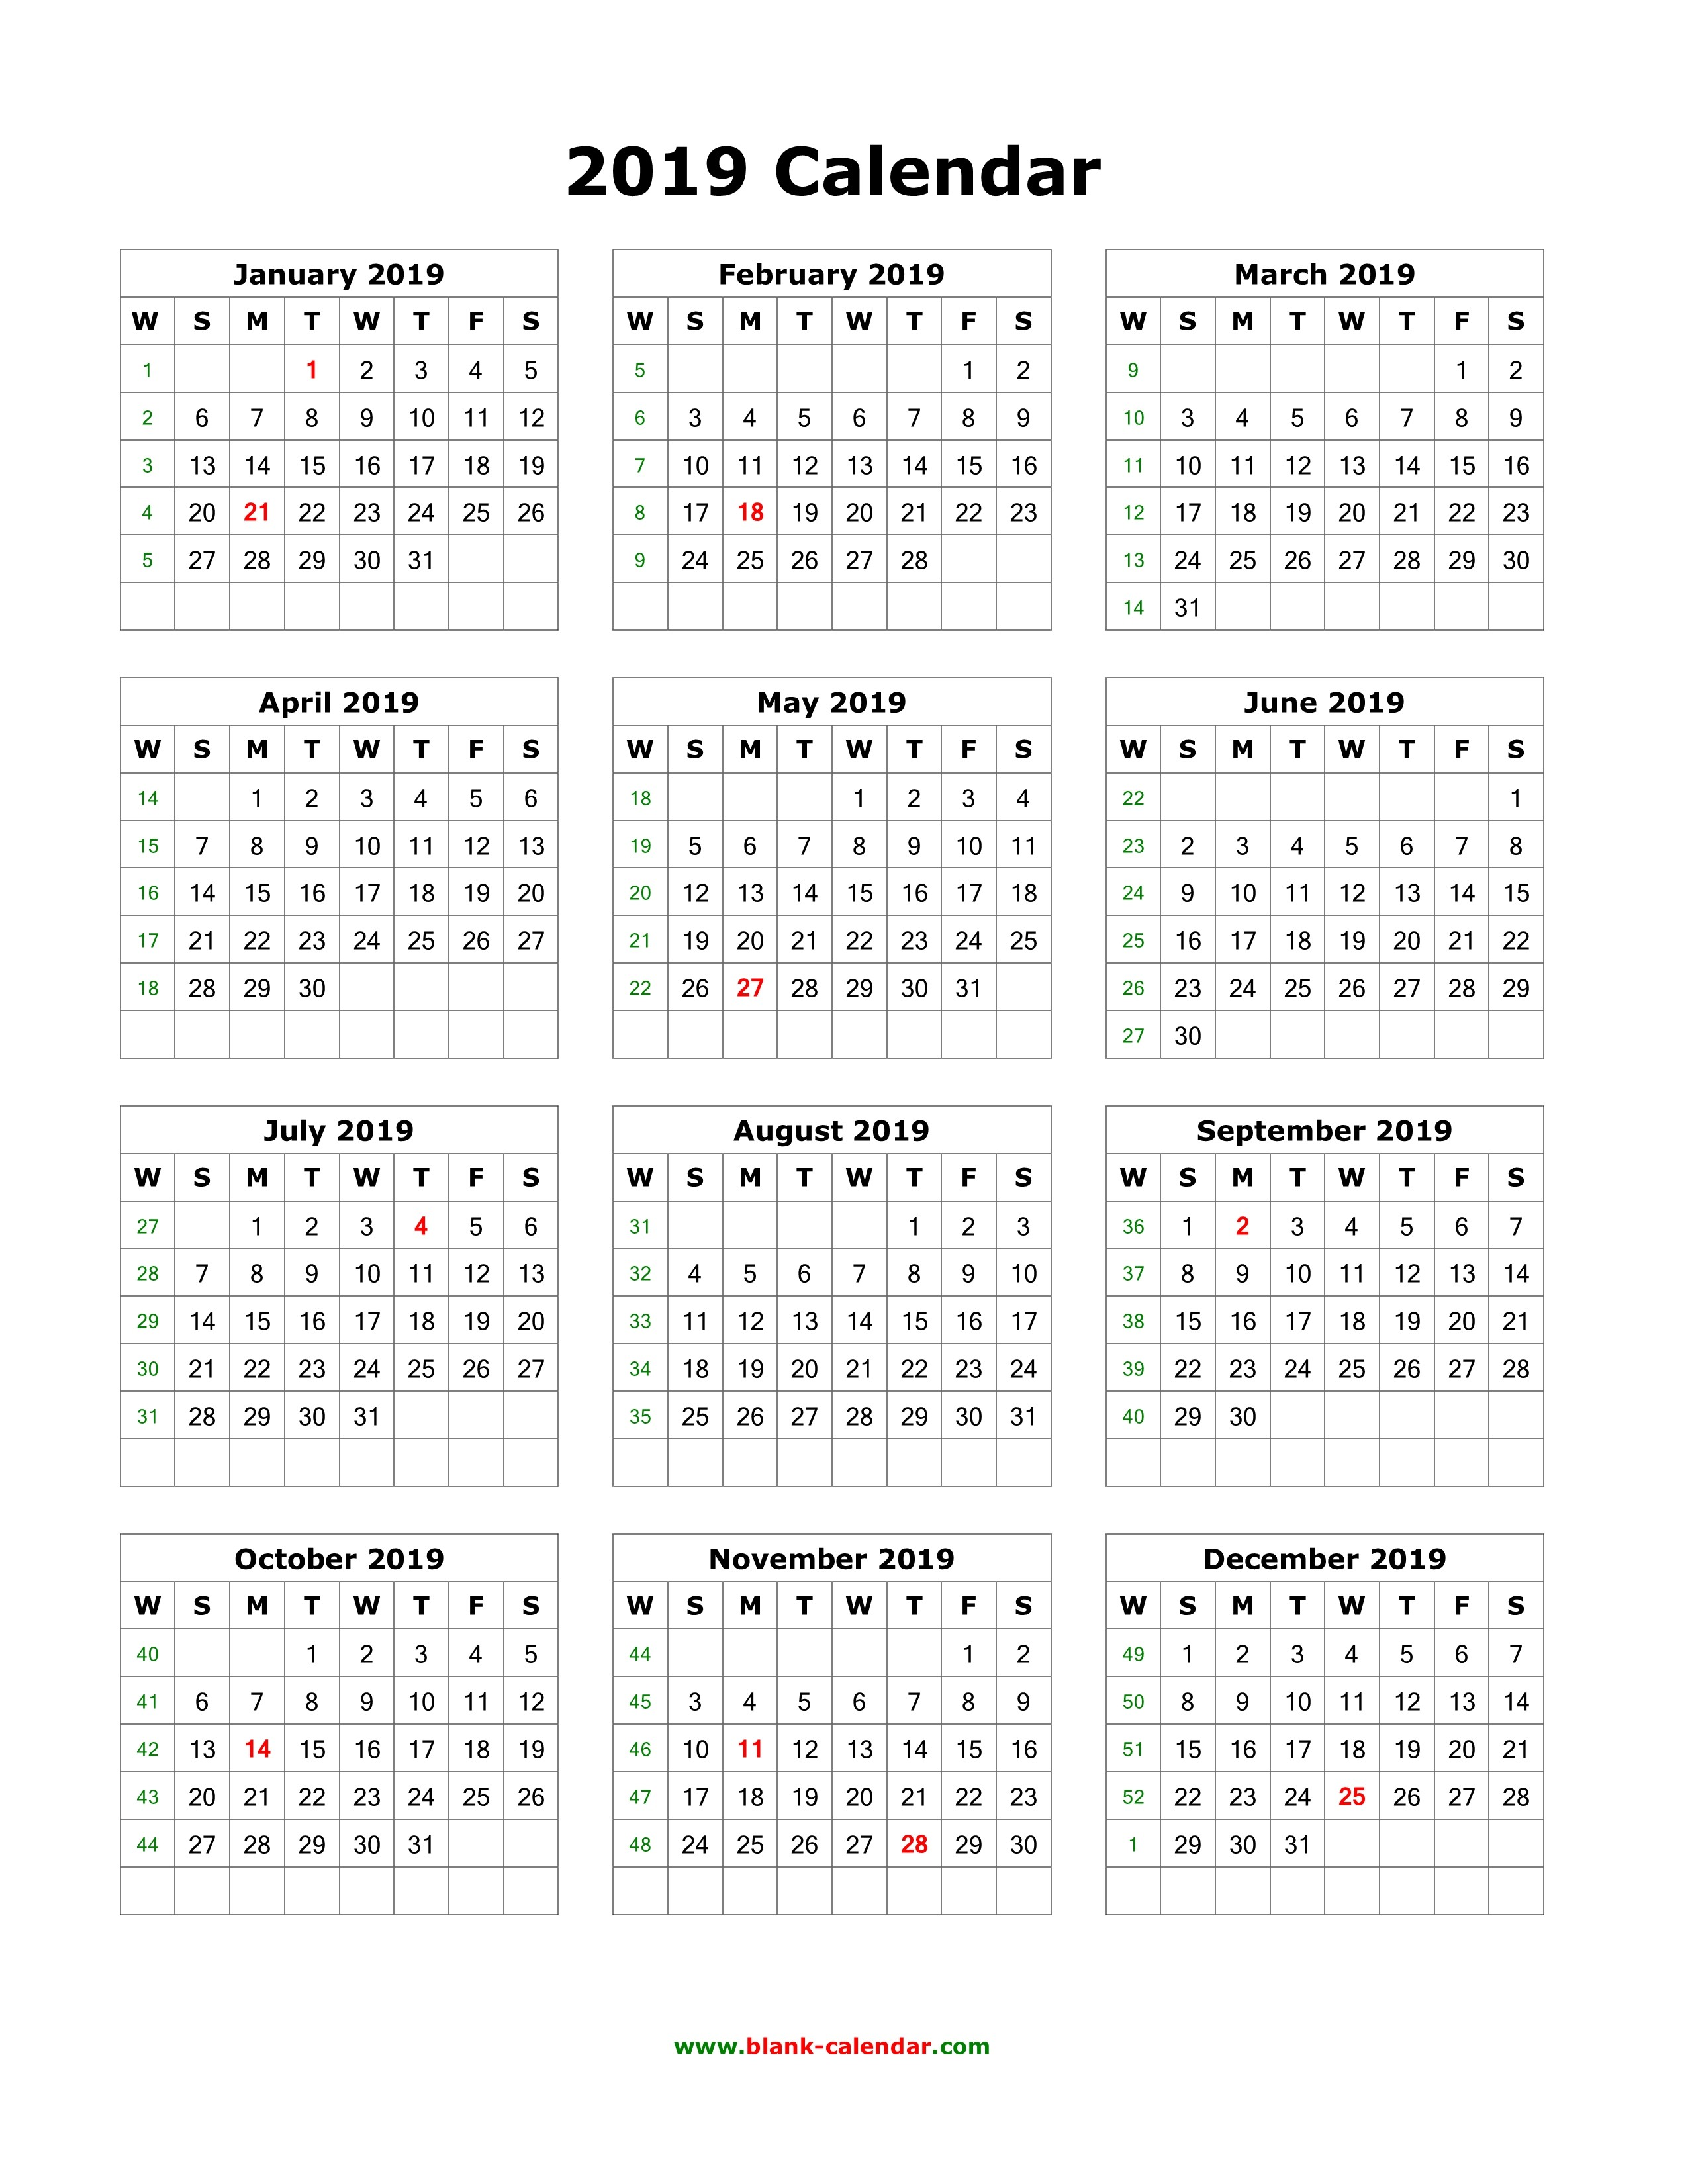 Kalender 2019 Book With Calendar Vertical Printable Coloring Page For Kids